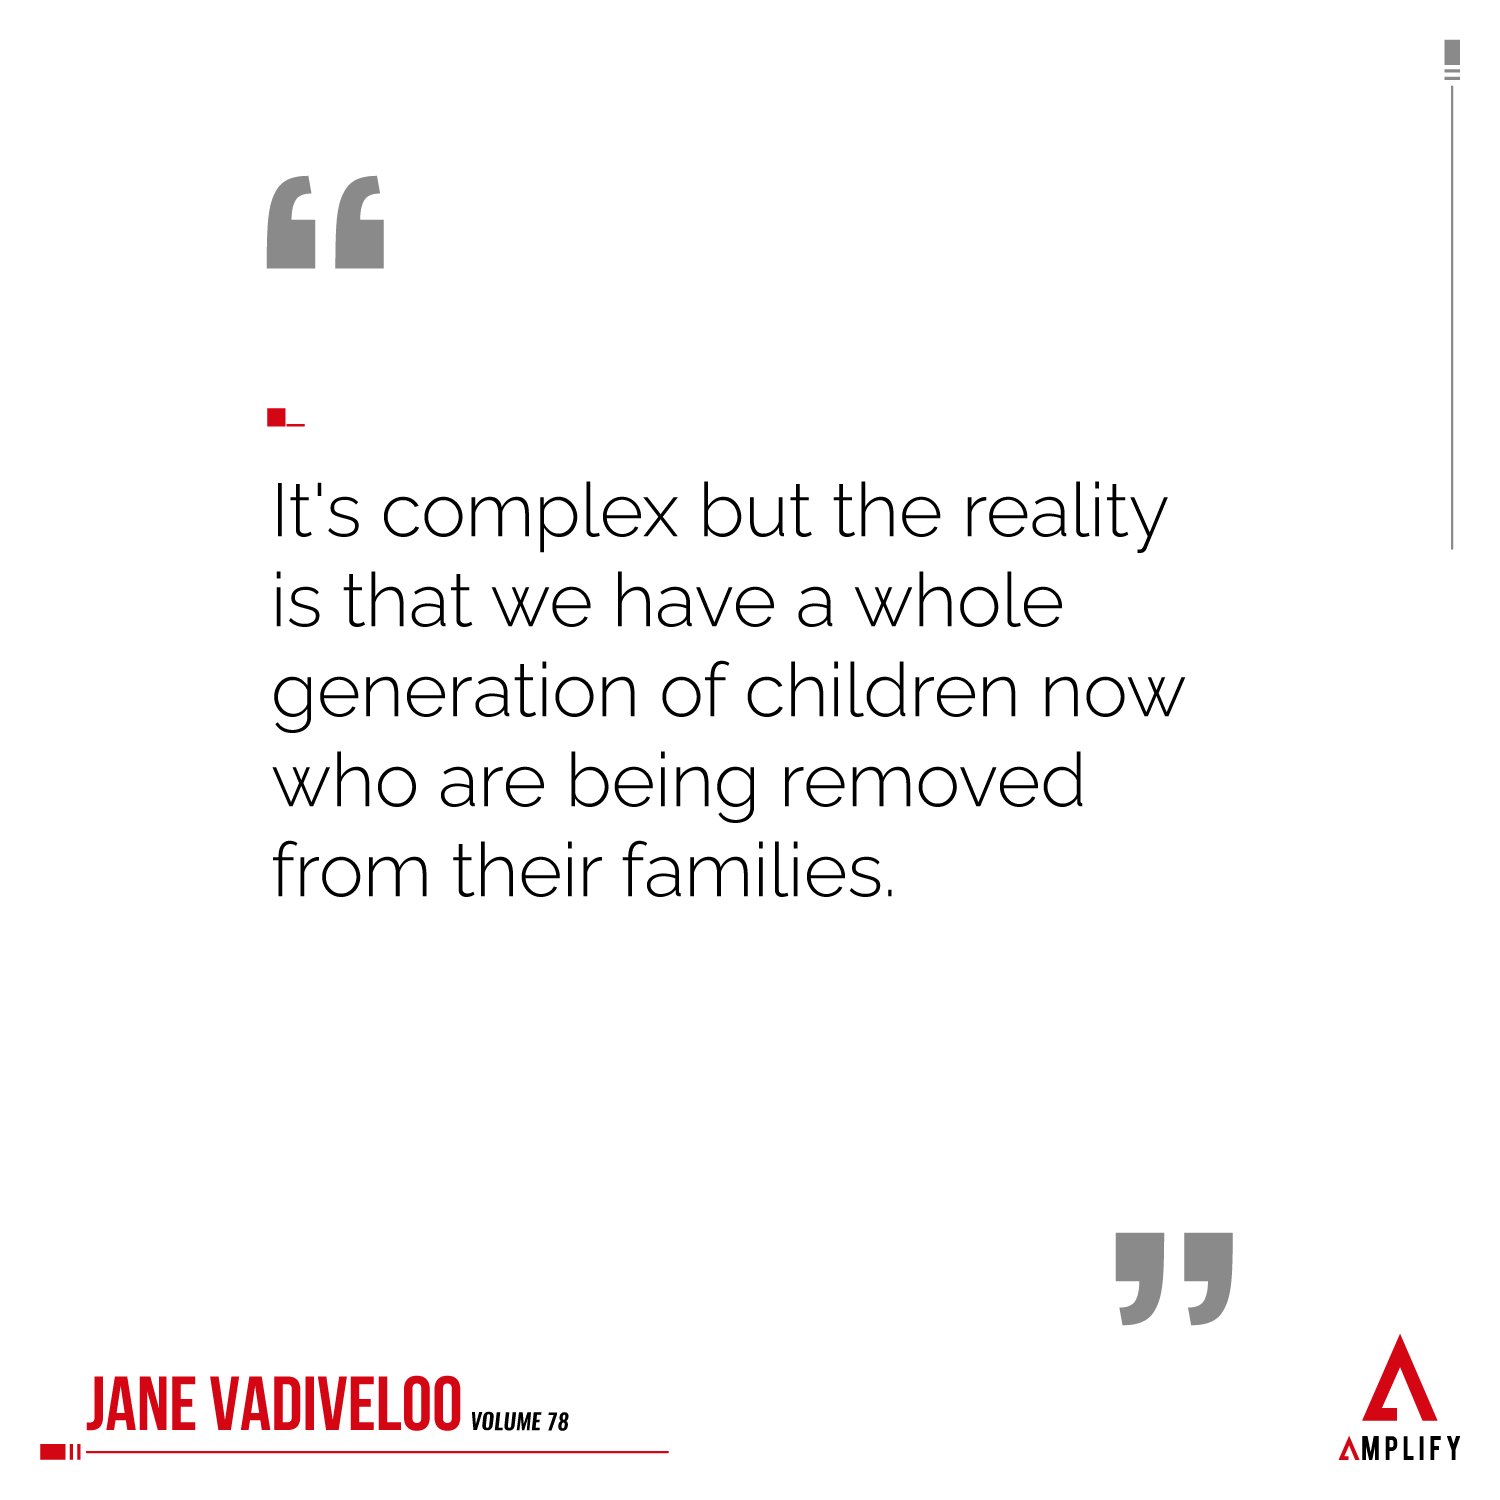 """decorative image with the quote """"It's complex but the reality is that we have a whole generation of children now who are being removed from their families."""" by Jane Vadiveloo"""